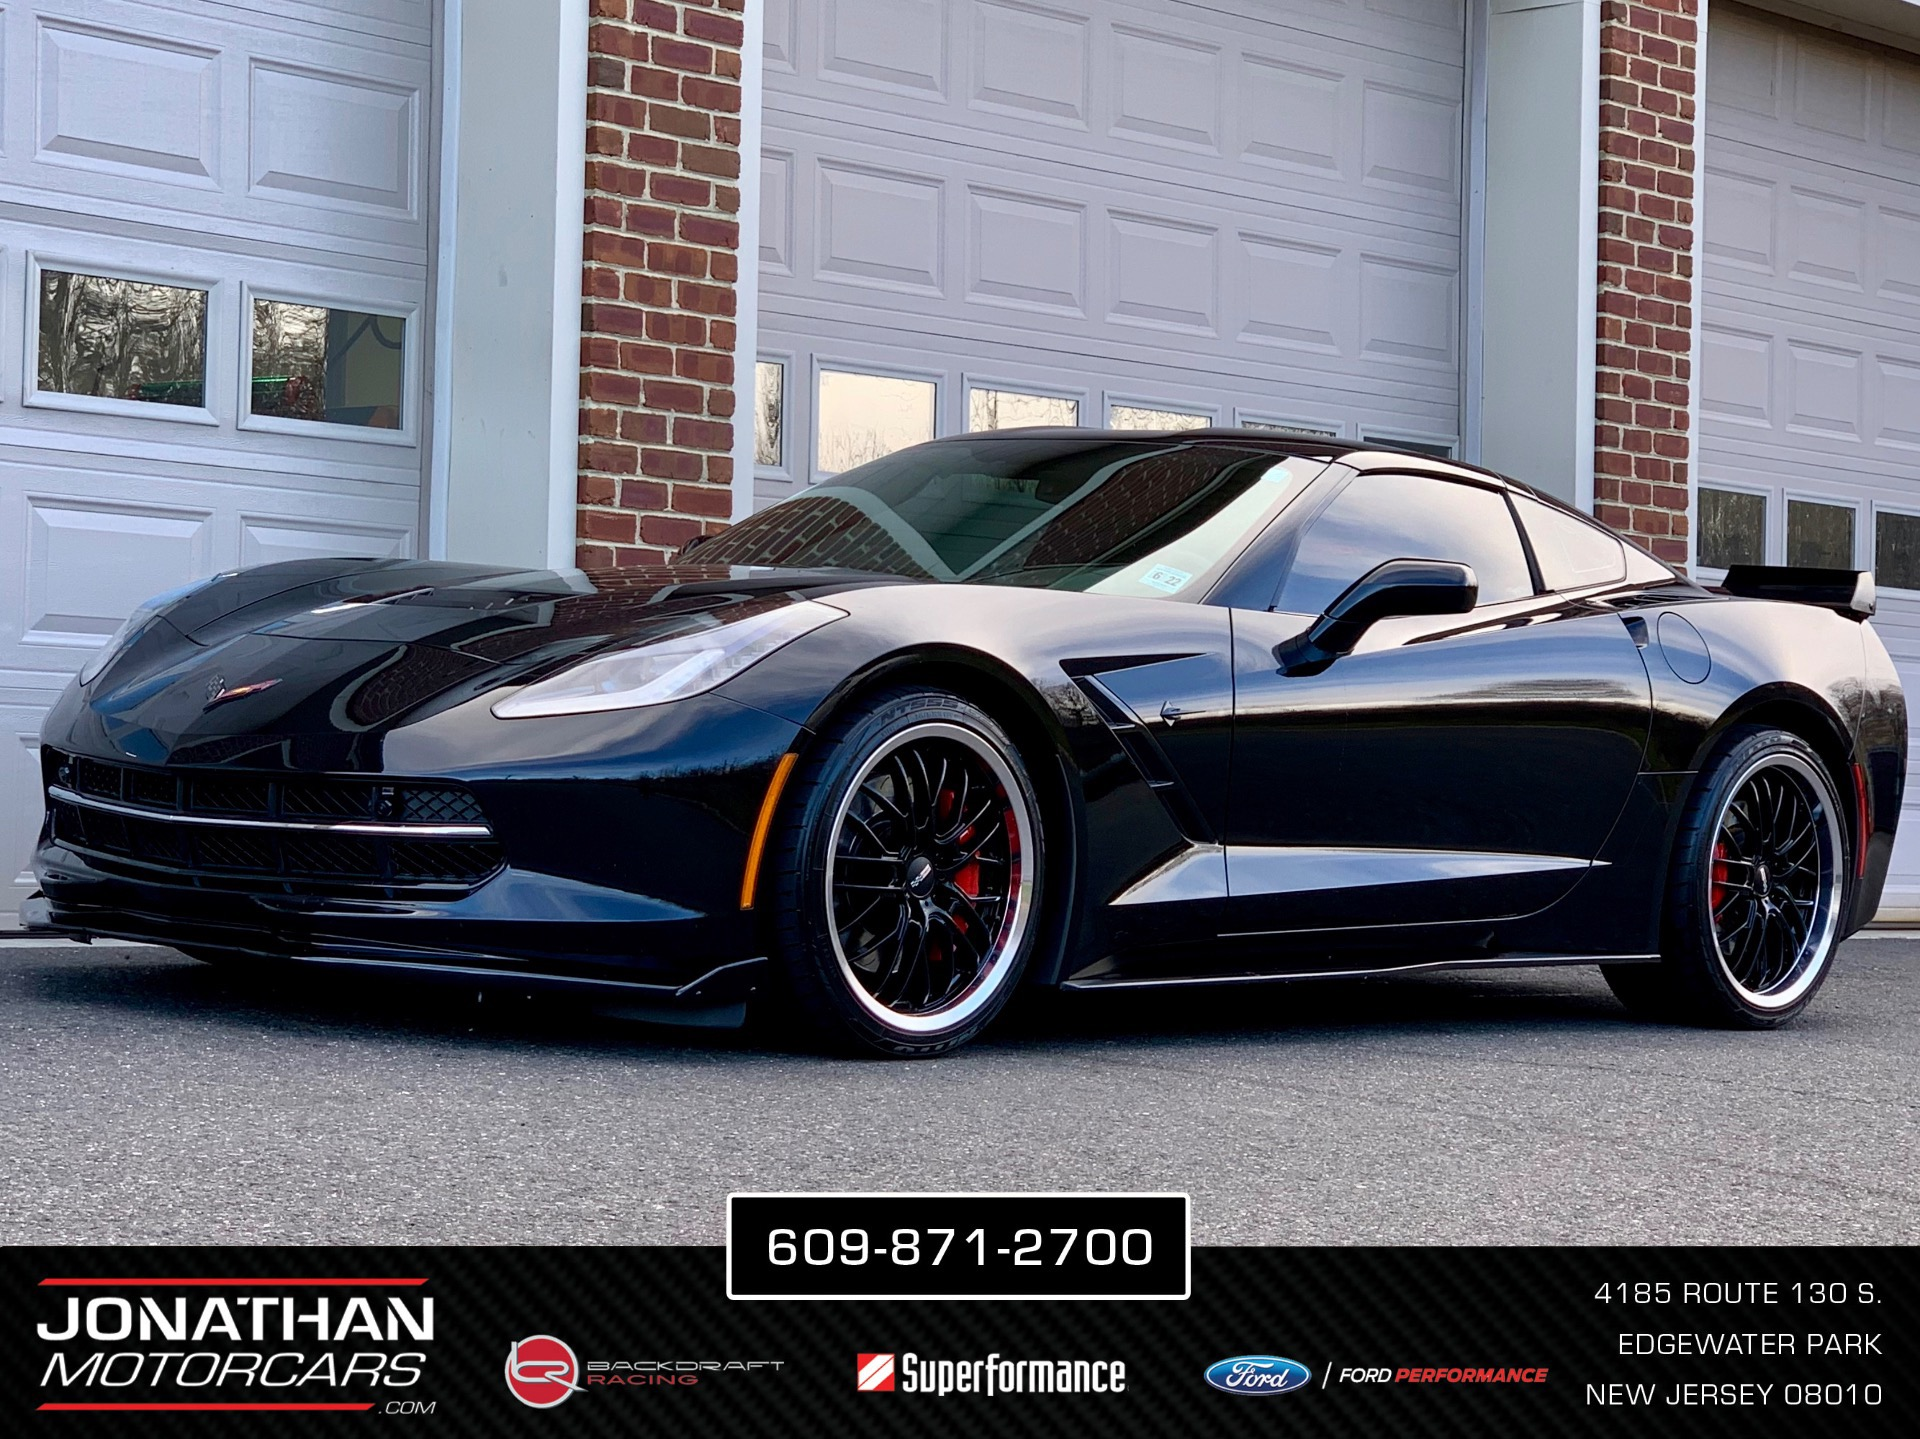 corvette stingray z51 2lt chevrolet rwd coupe nj cargurus near